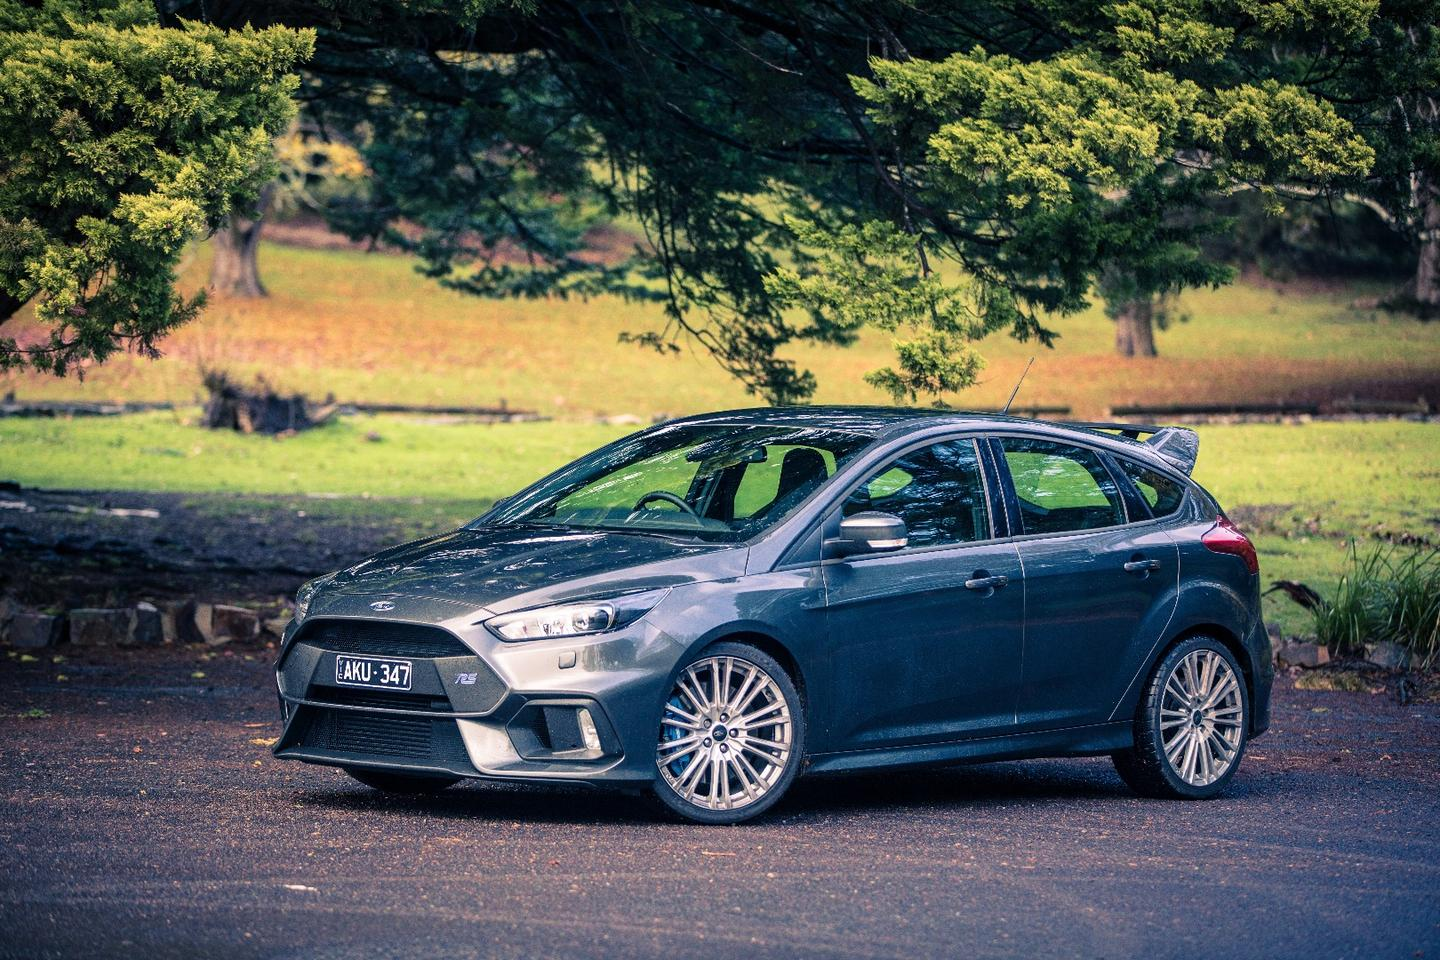 The pumped up Focus RS is a true hyper hatch